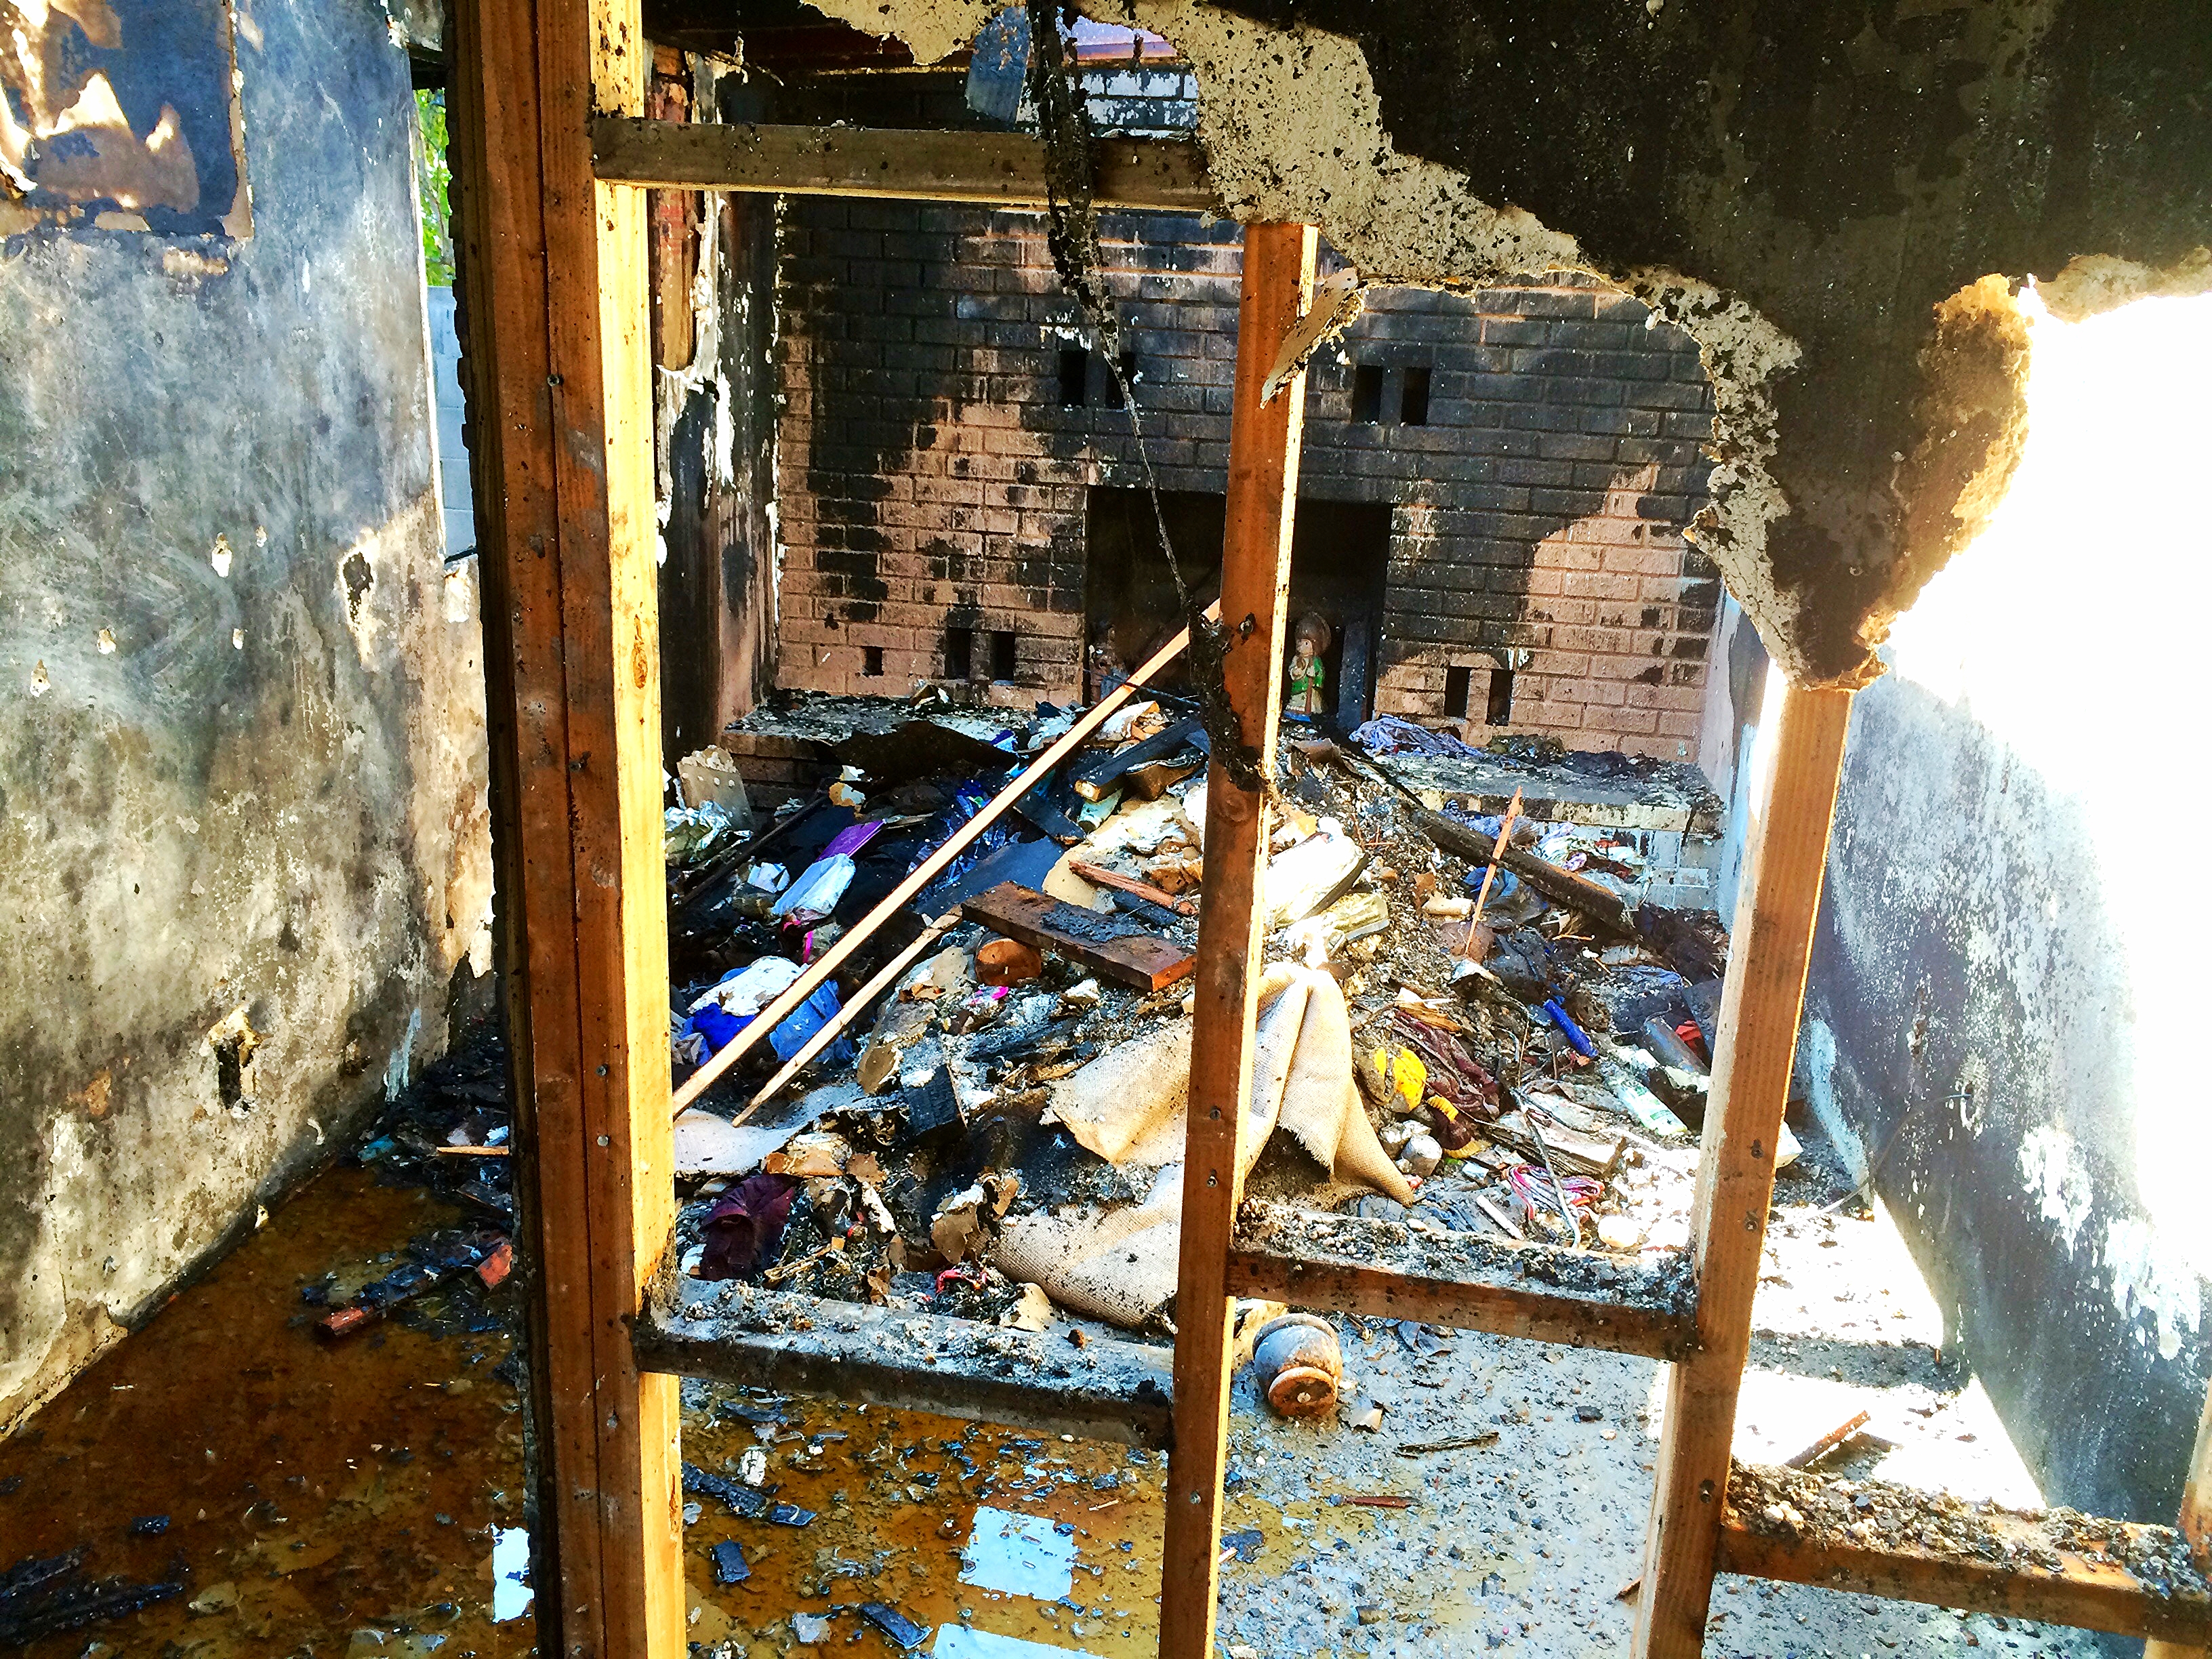 Burnt room of a house.